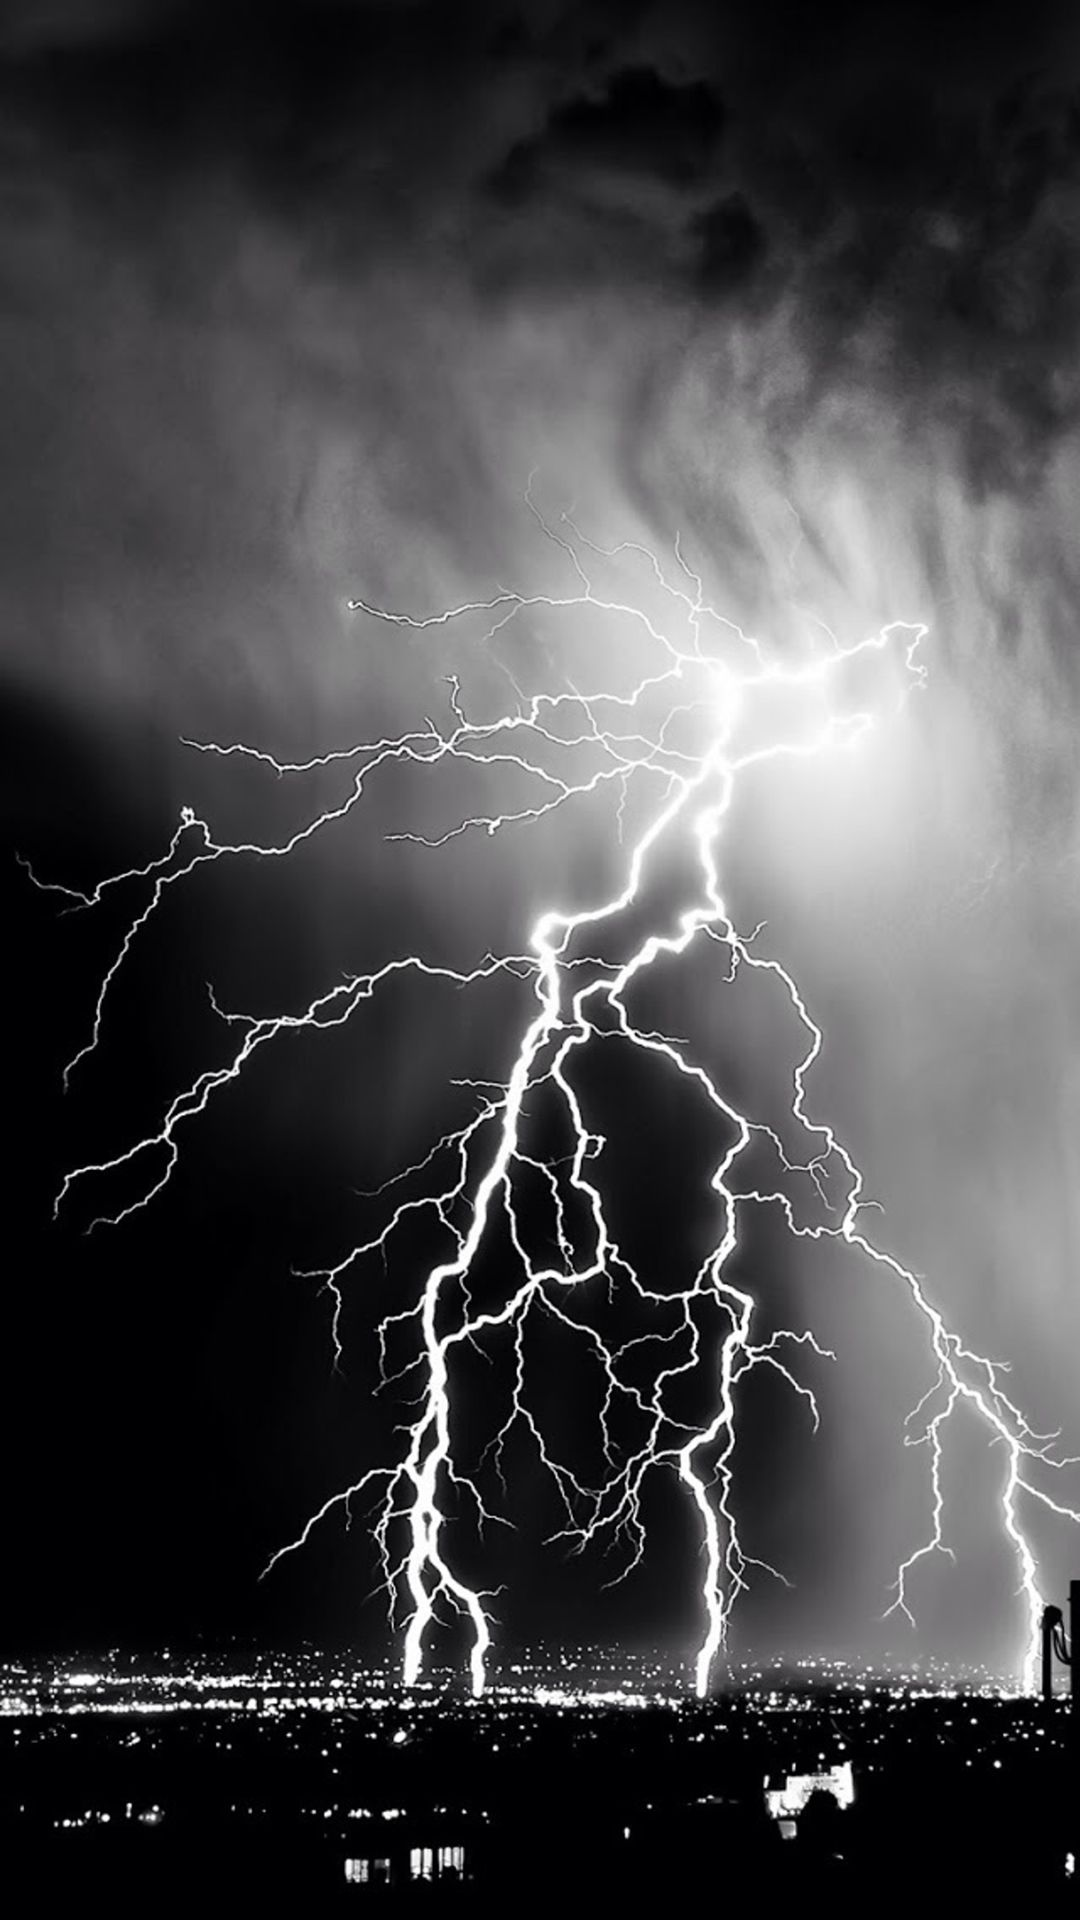 Storm Lightening Over City Iphone 6 Plus Wallpaper Black And White Wallpaper Iphone Black And White Background Black And White Picture Wall